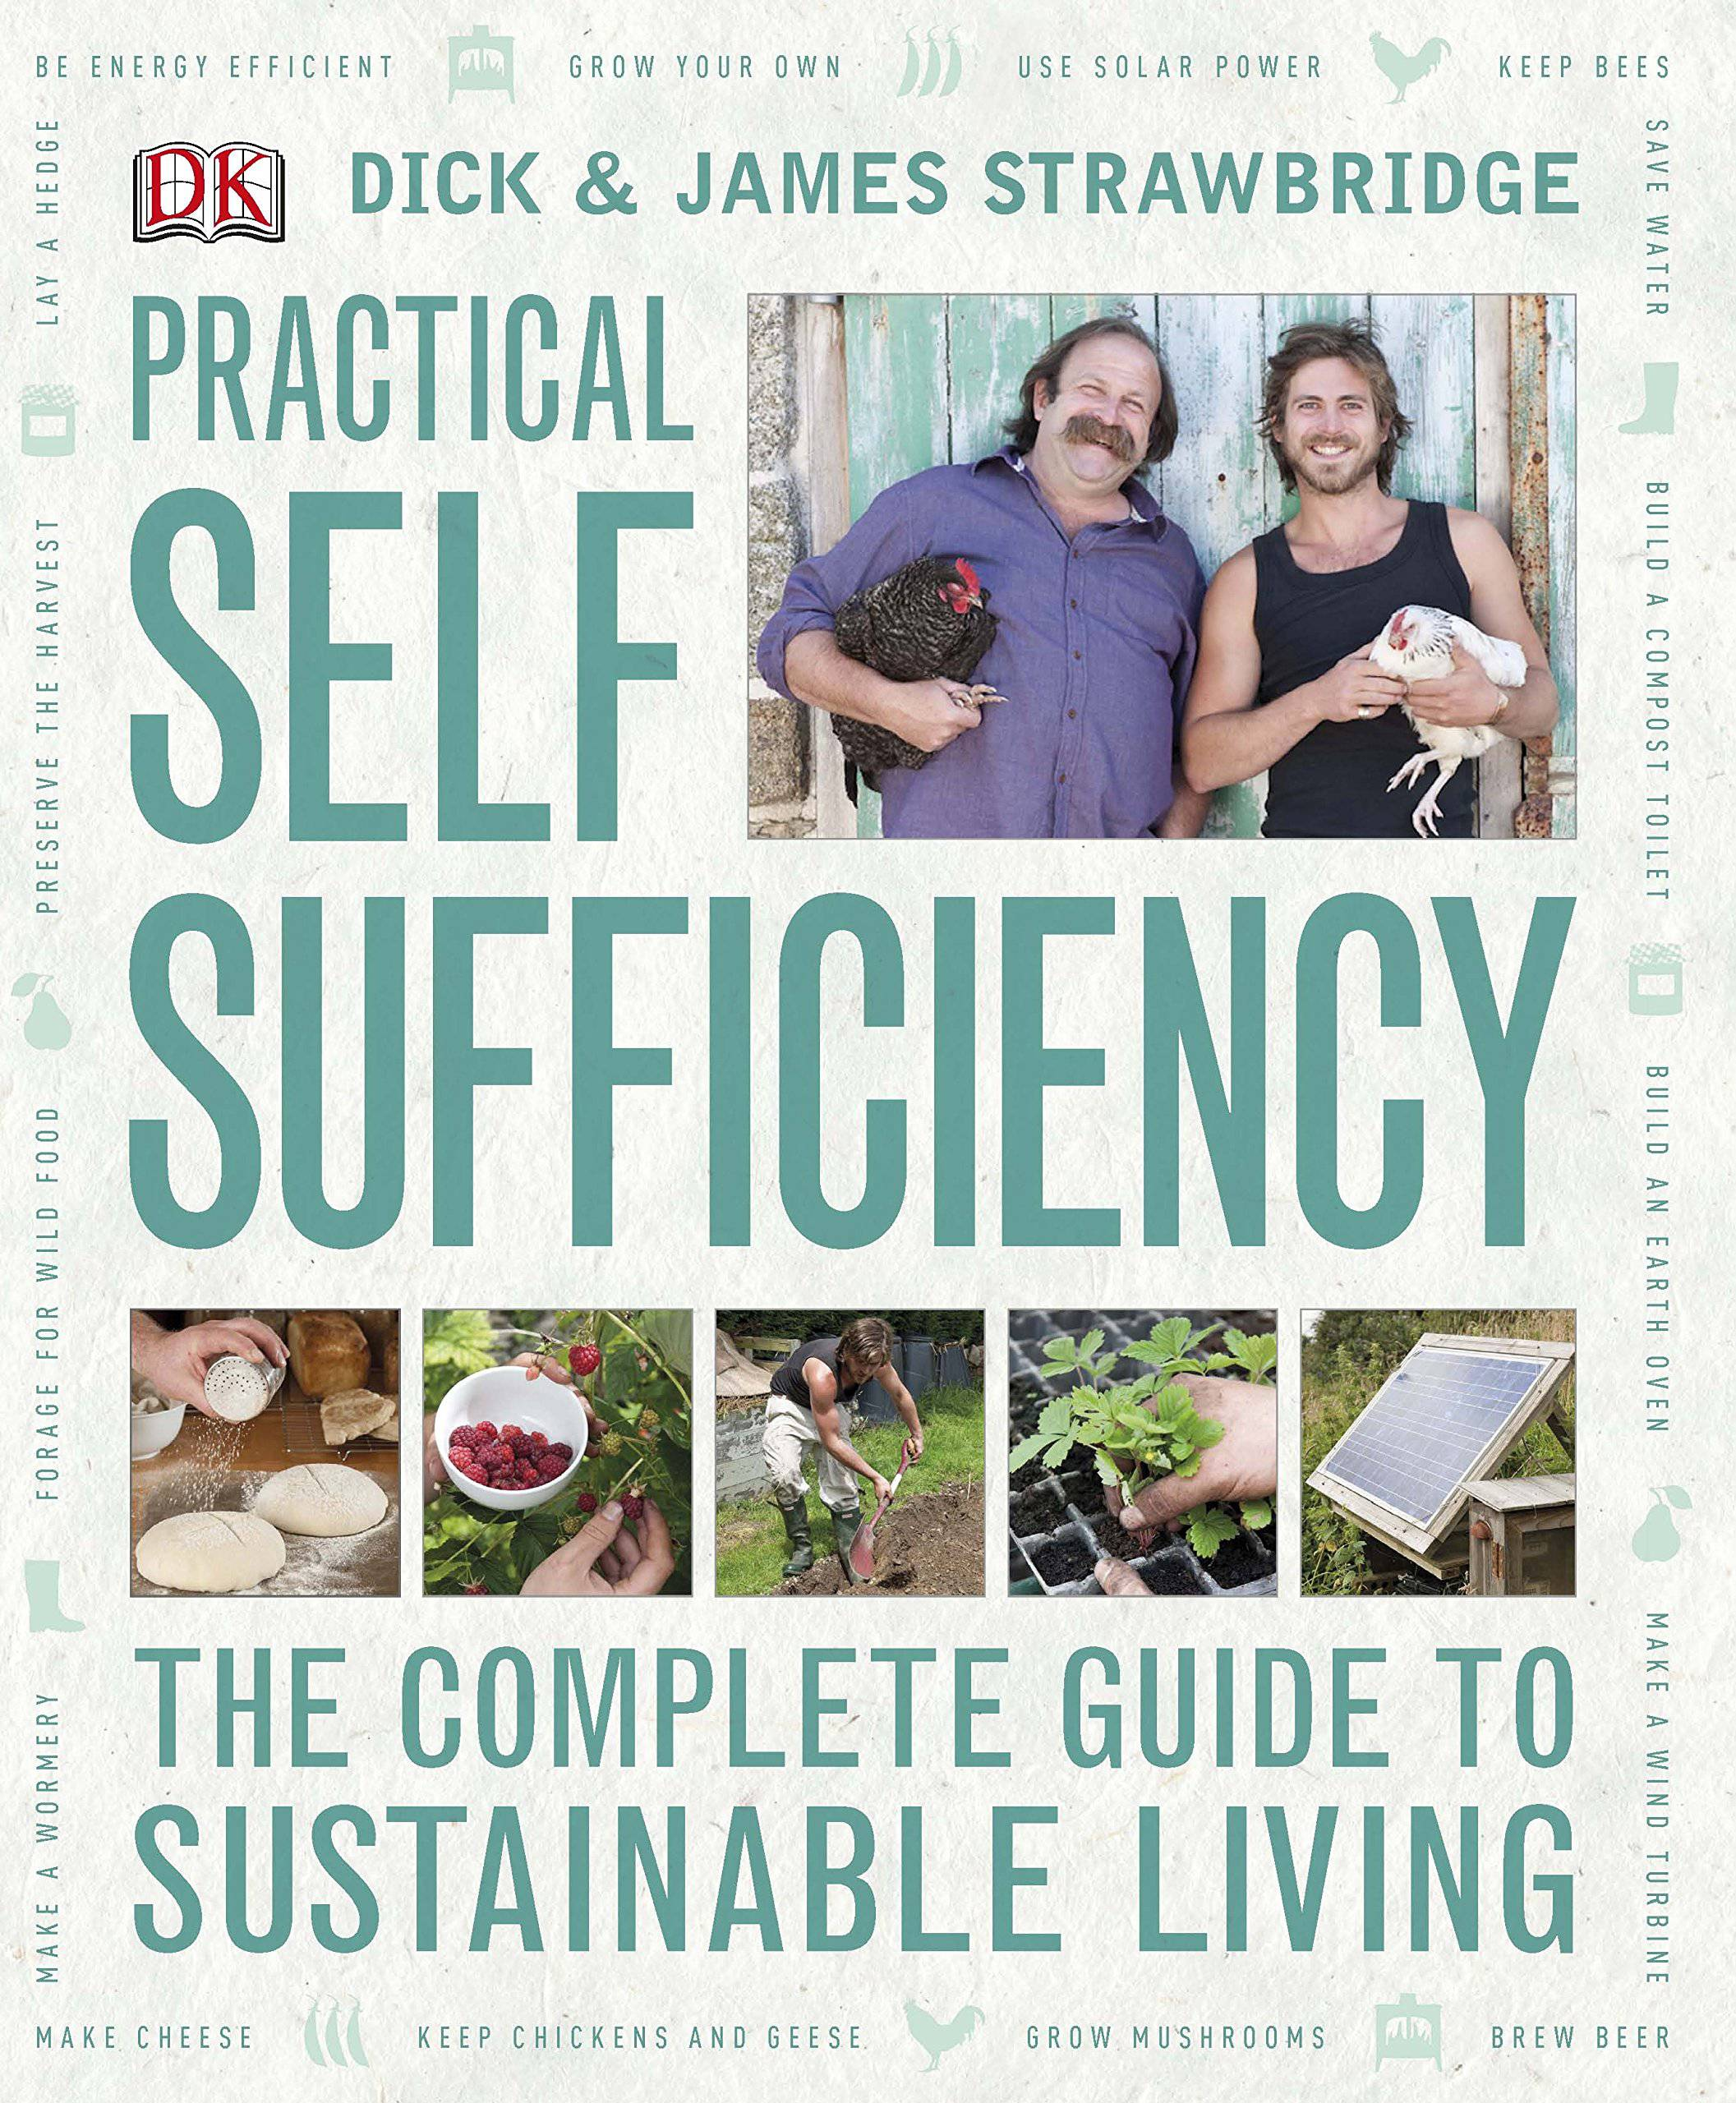 Practical Self-sufficency by Dick & James Strawbridge